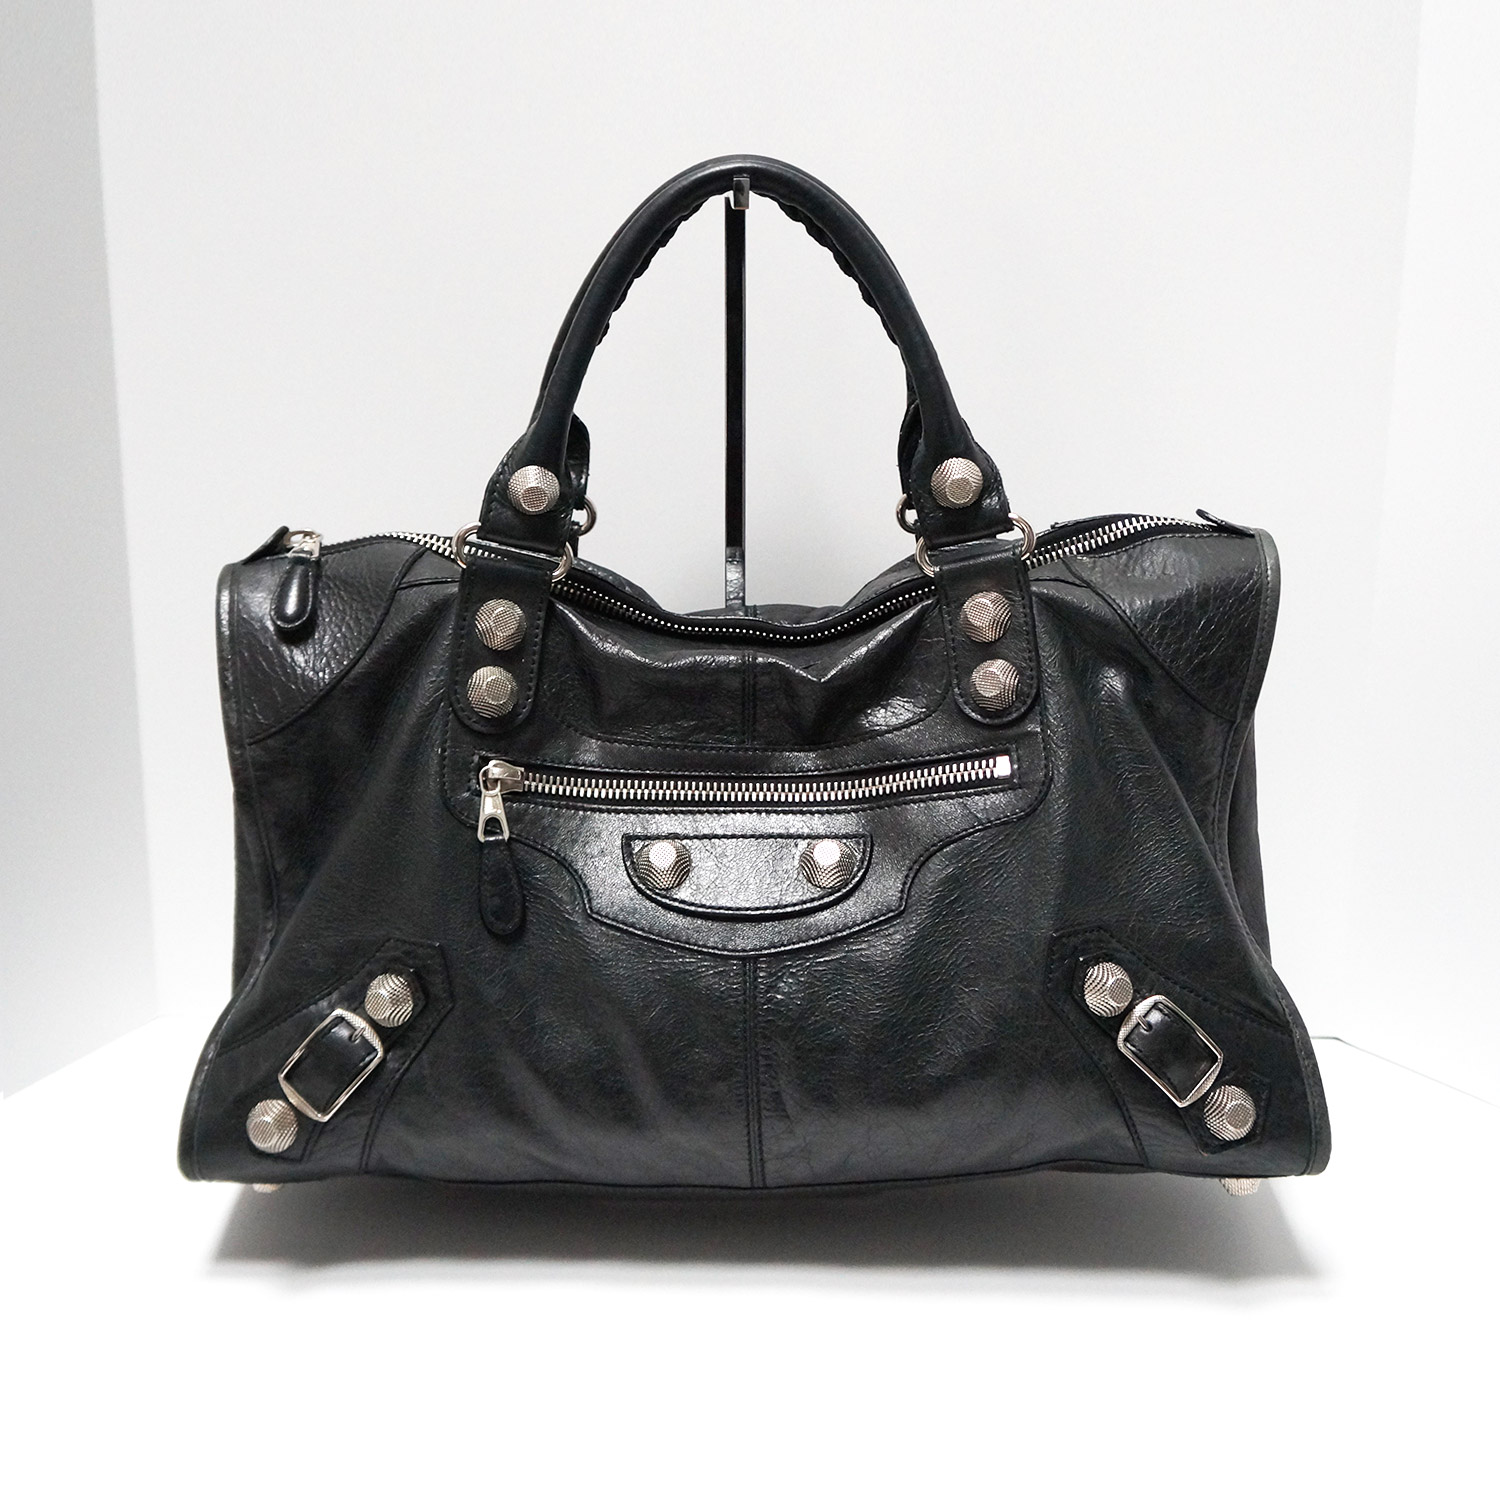 cb17dd3d6c7e Balenciaga Black Leather Classic Work Motorcycle Bag with Giant 21 ...